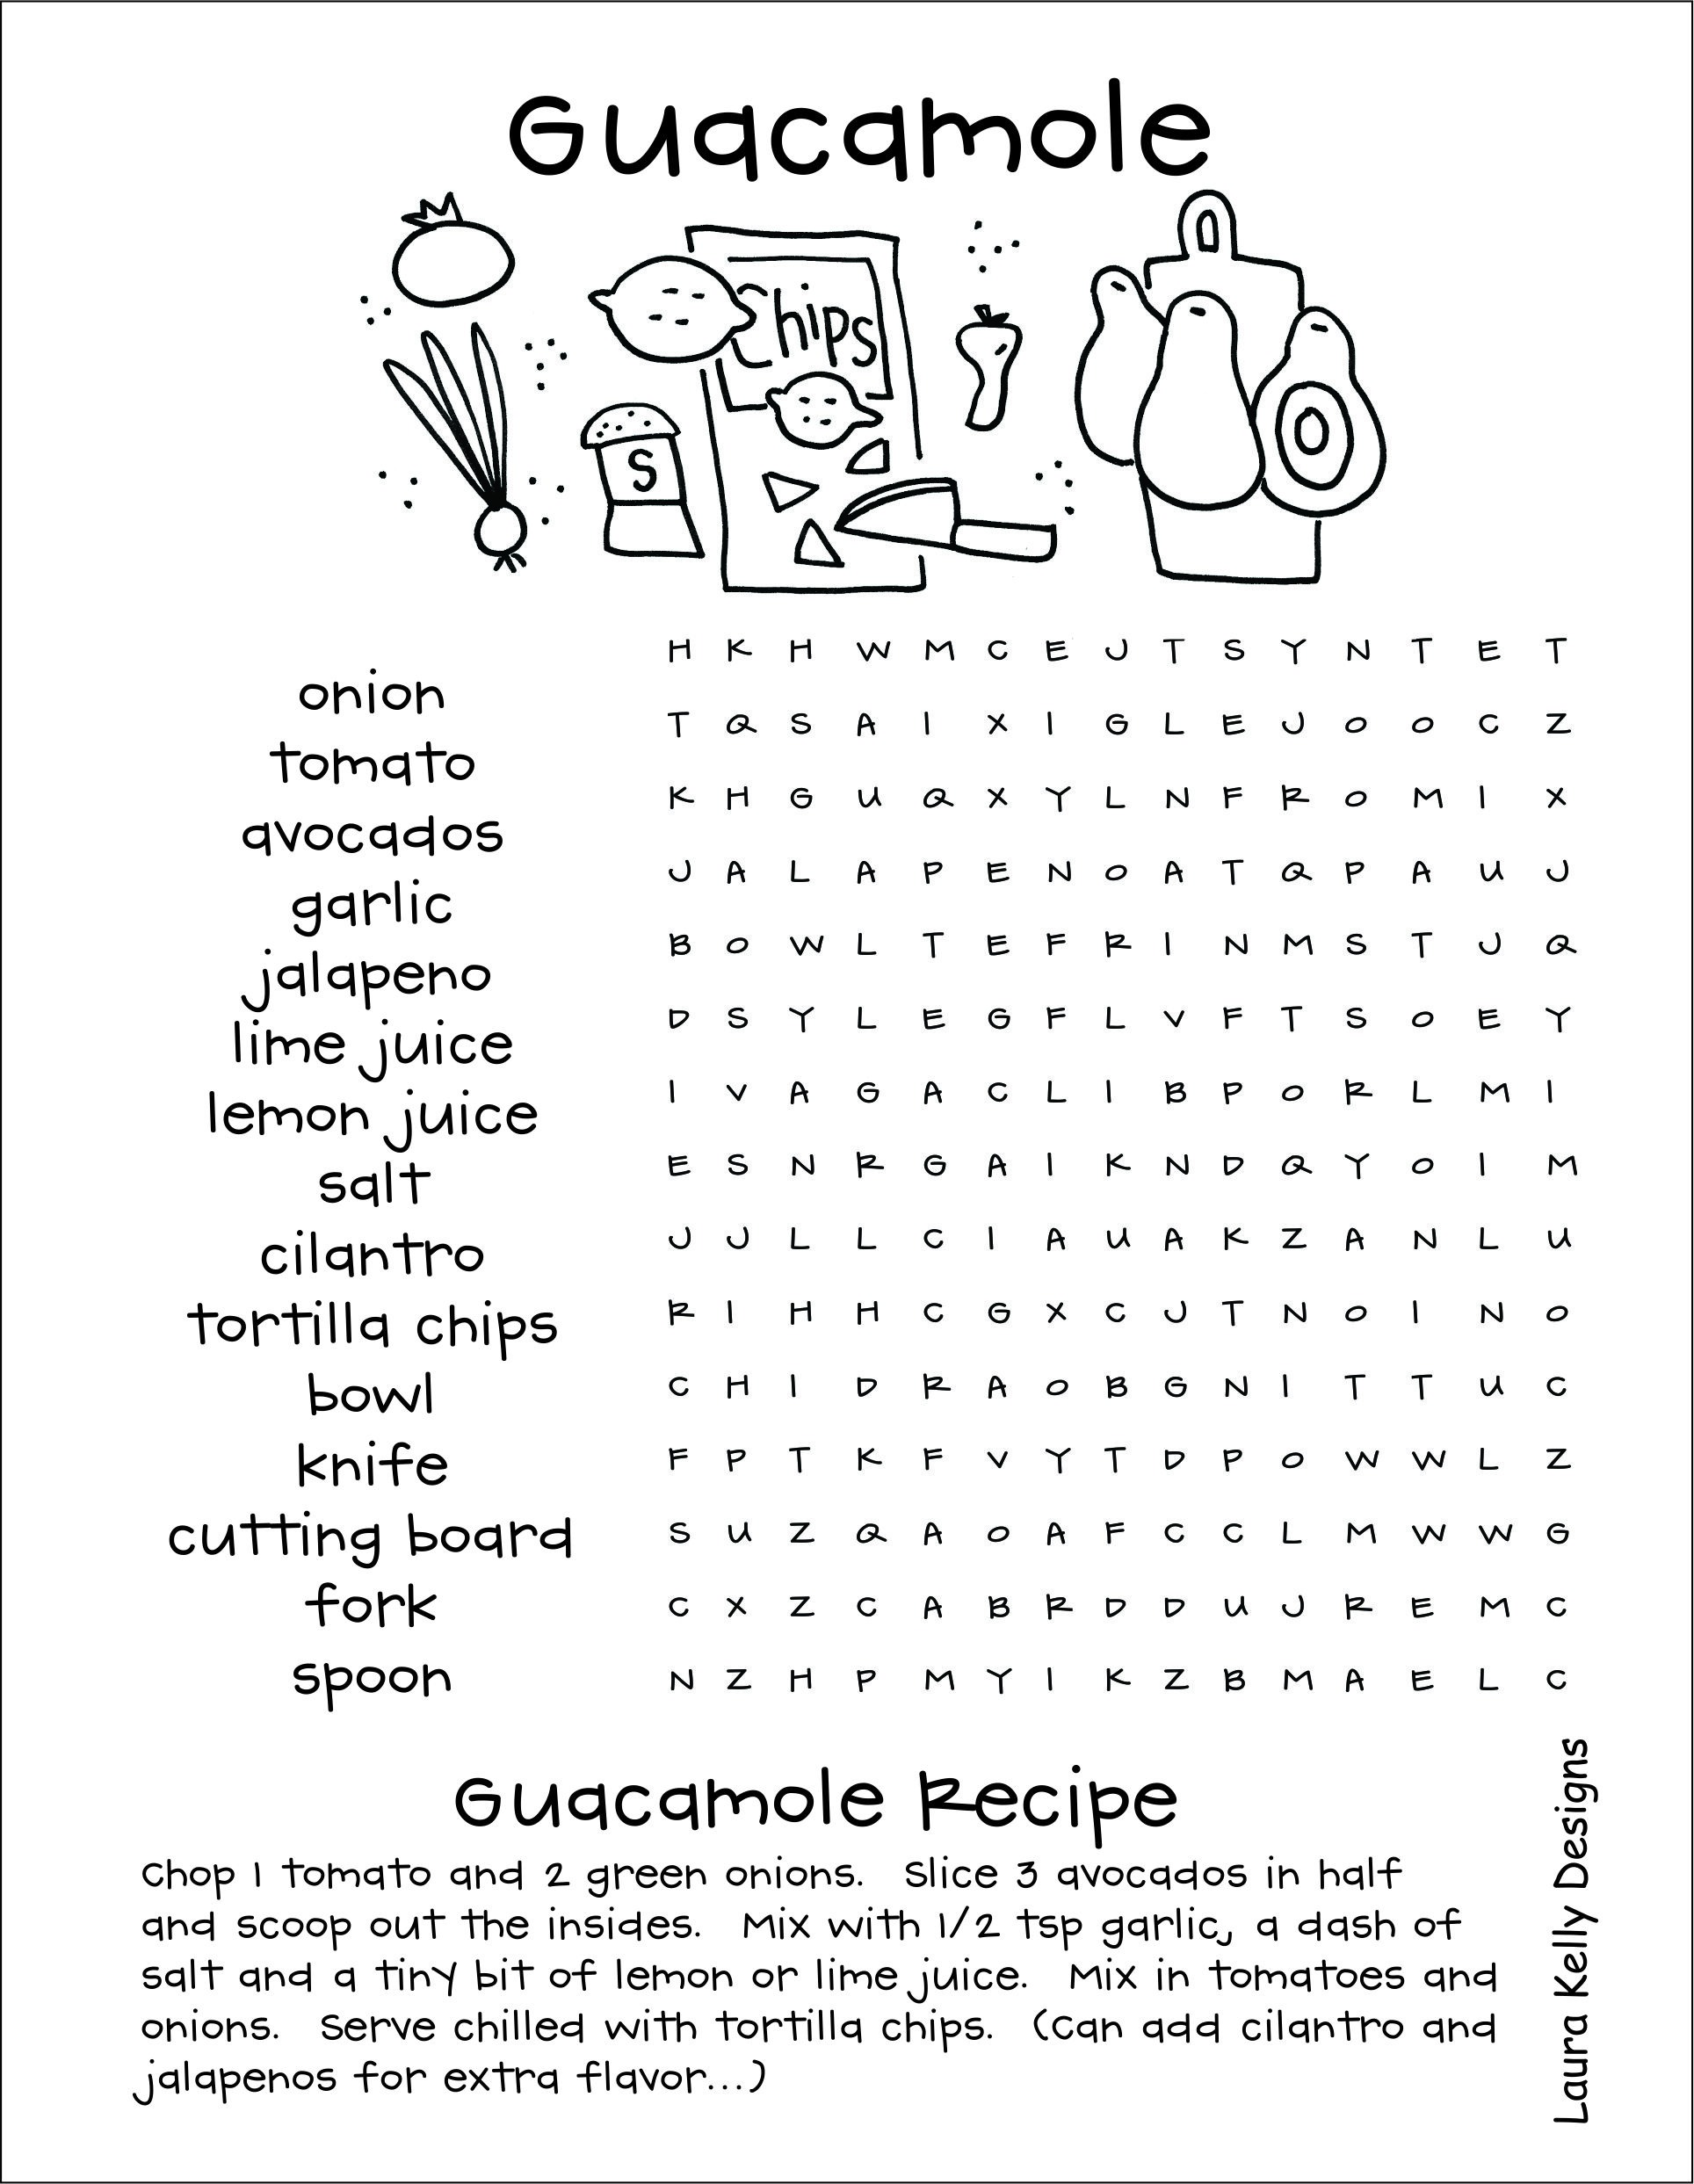 Guacamole Word Search and Recipe